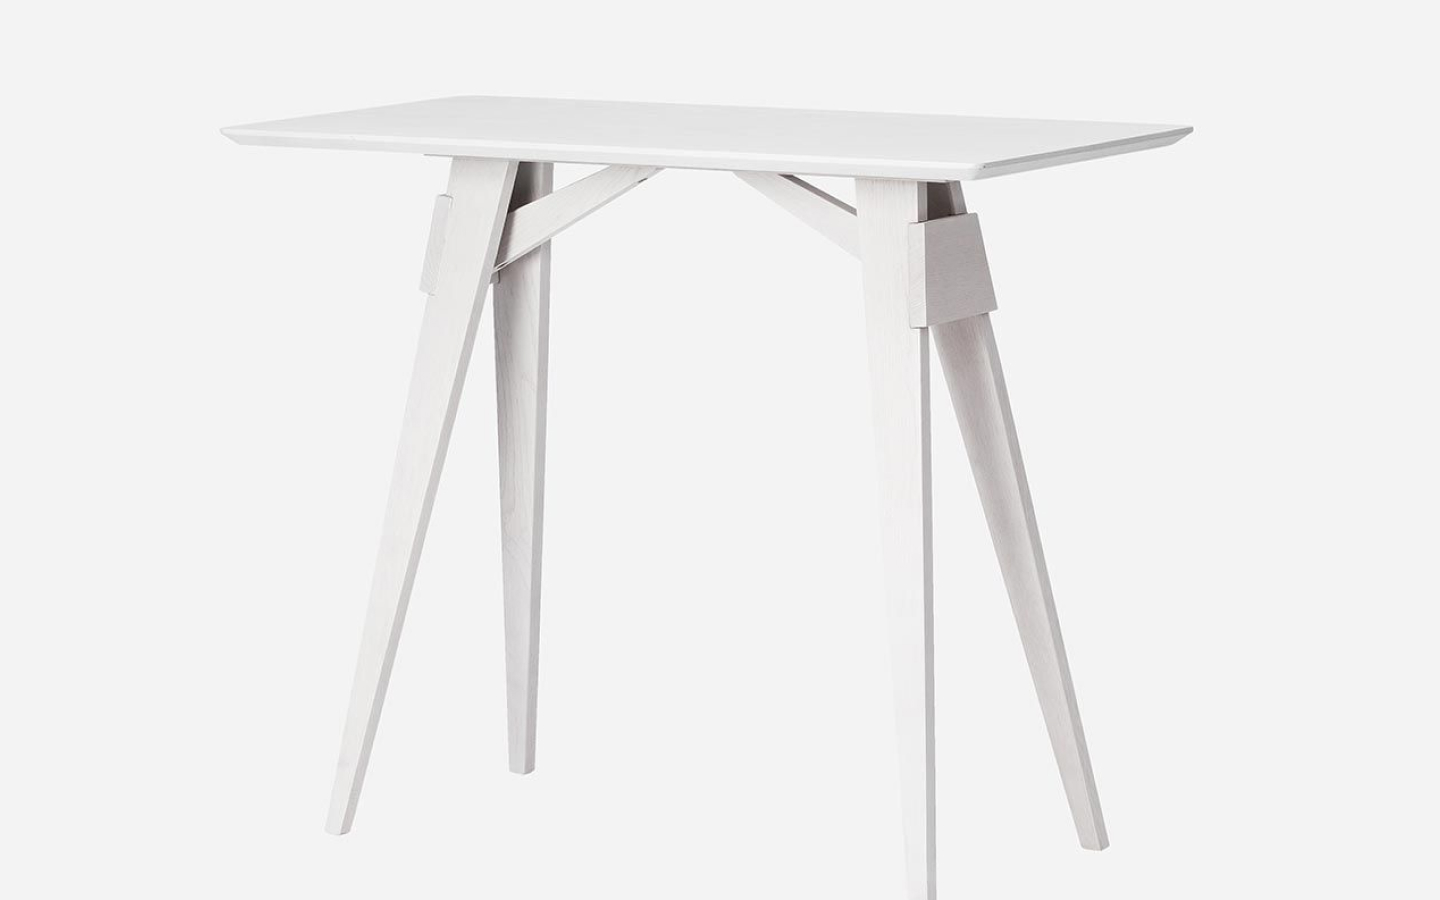 Rectangular white side table with angled legs